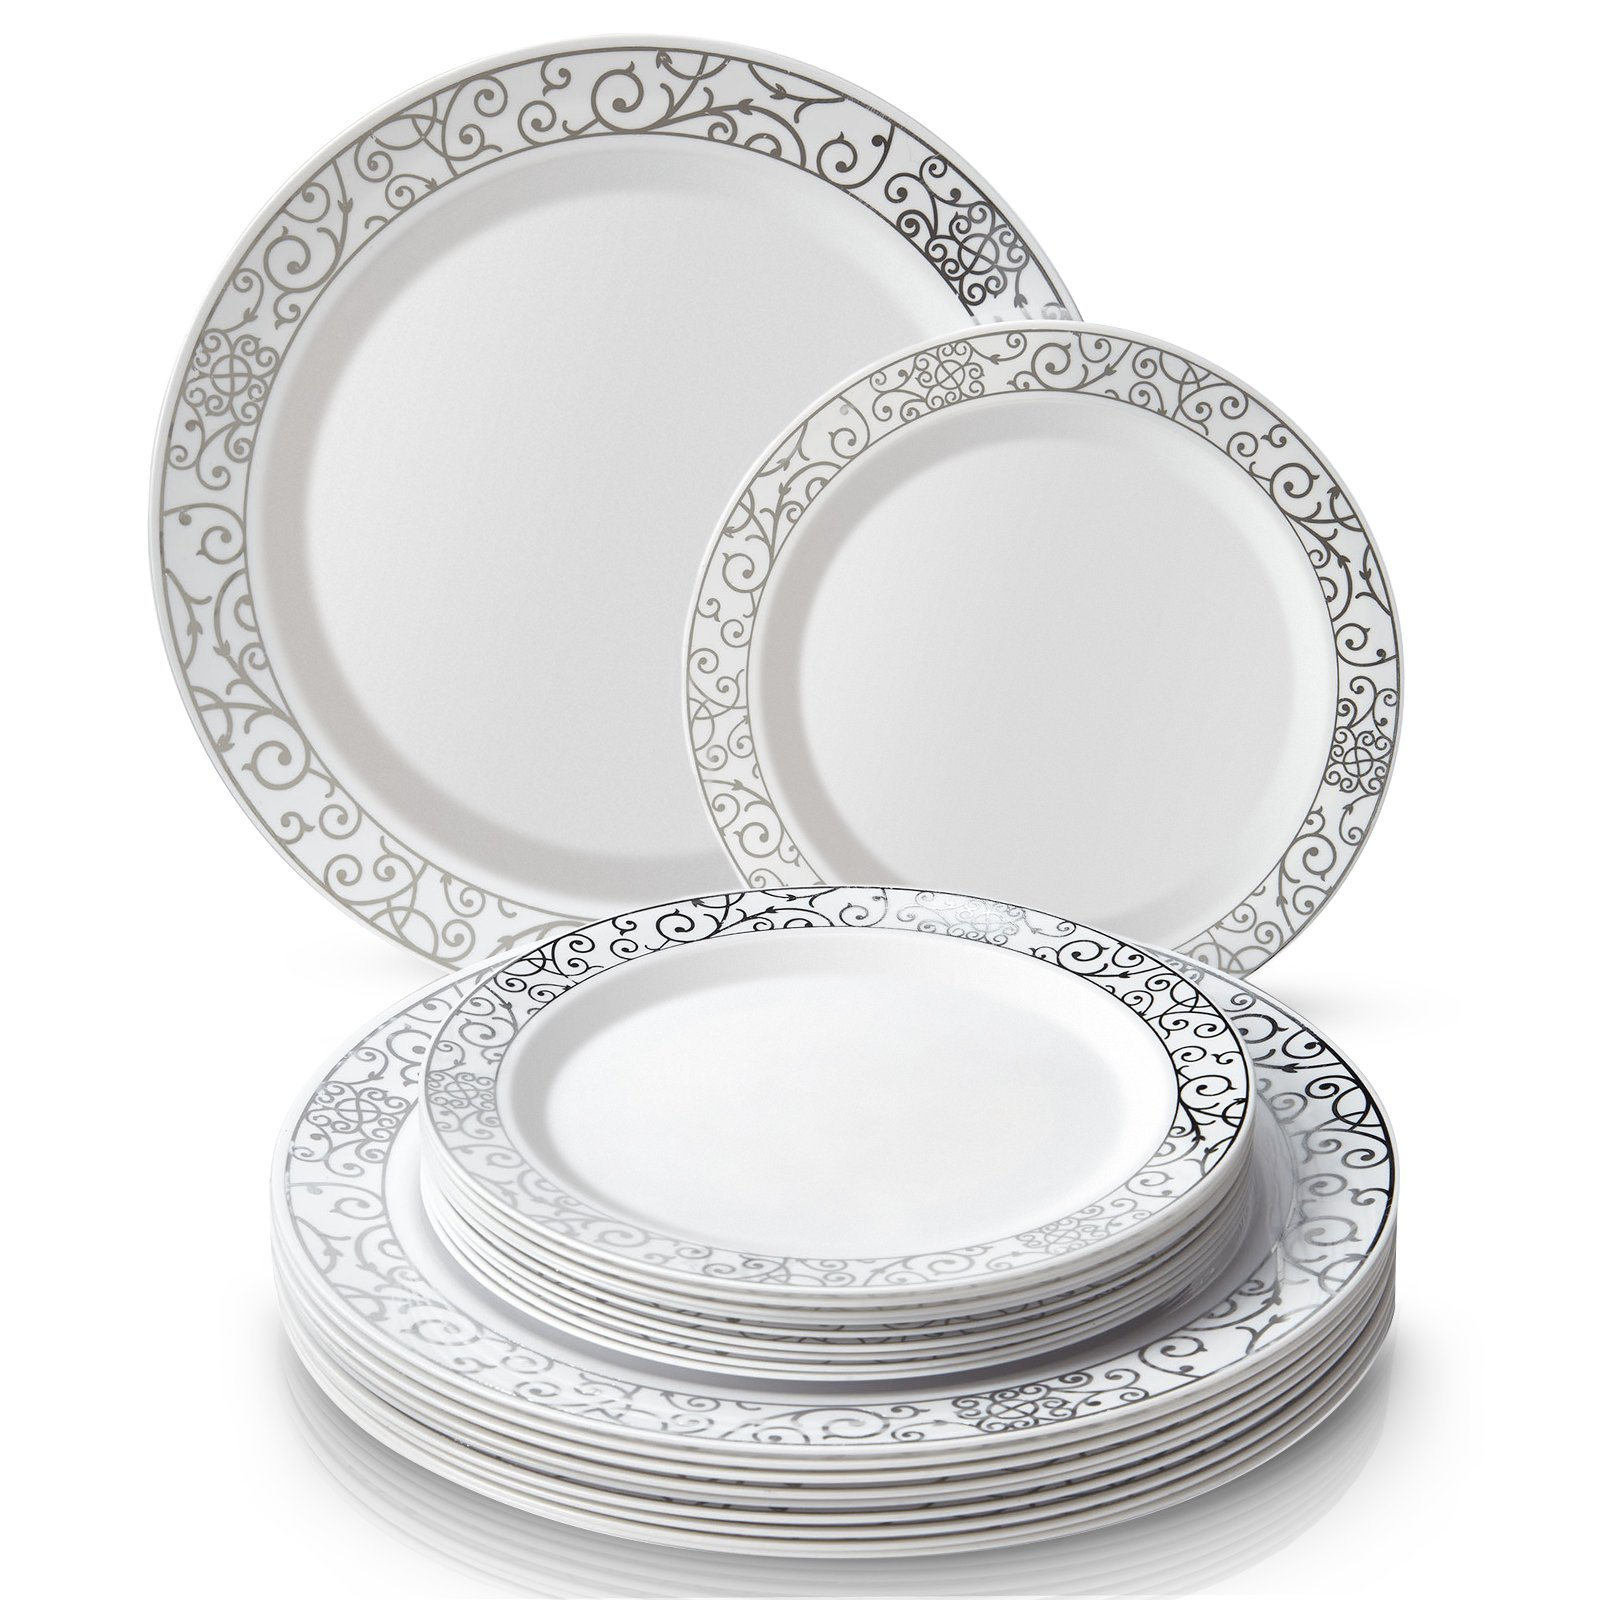 PARTY DISPOSABLE 40 PC DINNERWARE SET | 20 Dinner Plates | 20 Salad/Dessert plates | Heavy Duty Plastic Dishes | Elegant Fine China Look | Upscale Wedding and Dining (Venetian Collection-White/Silver)